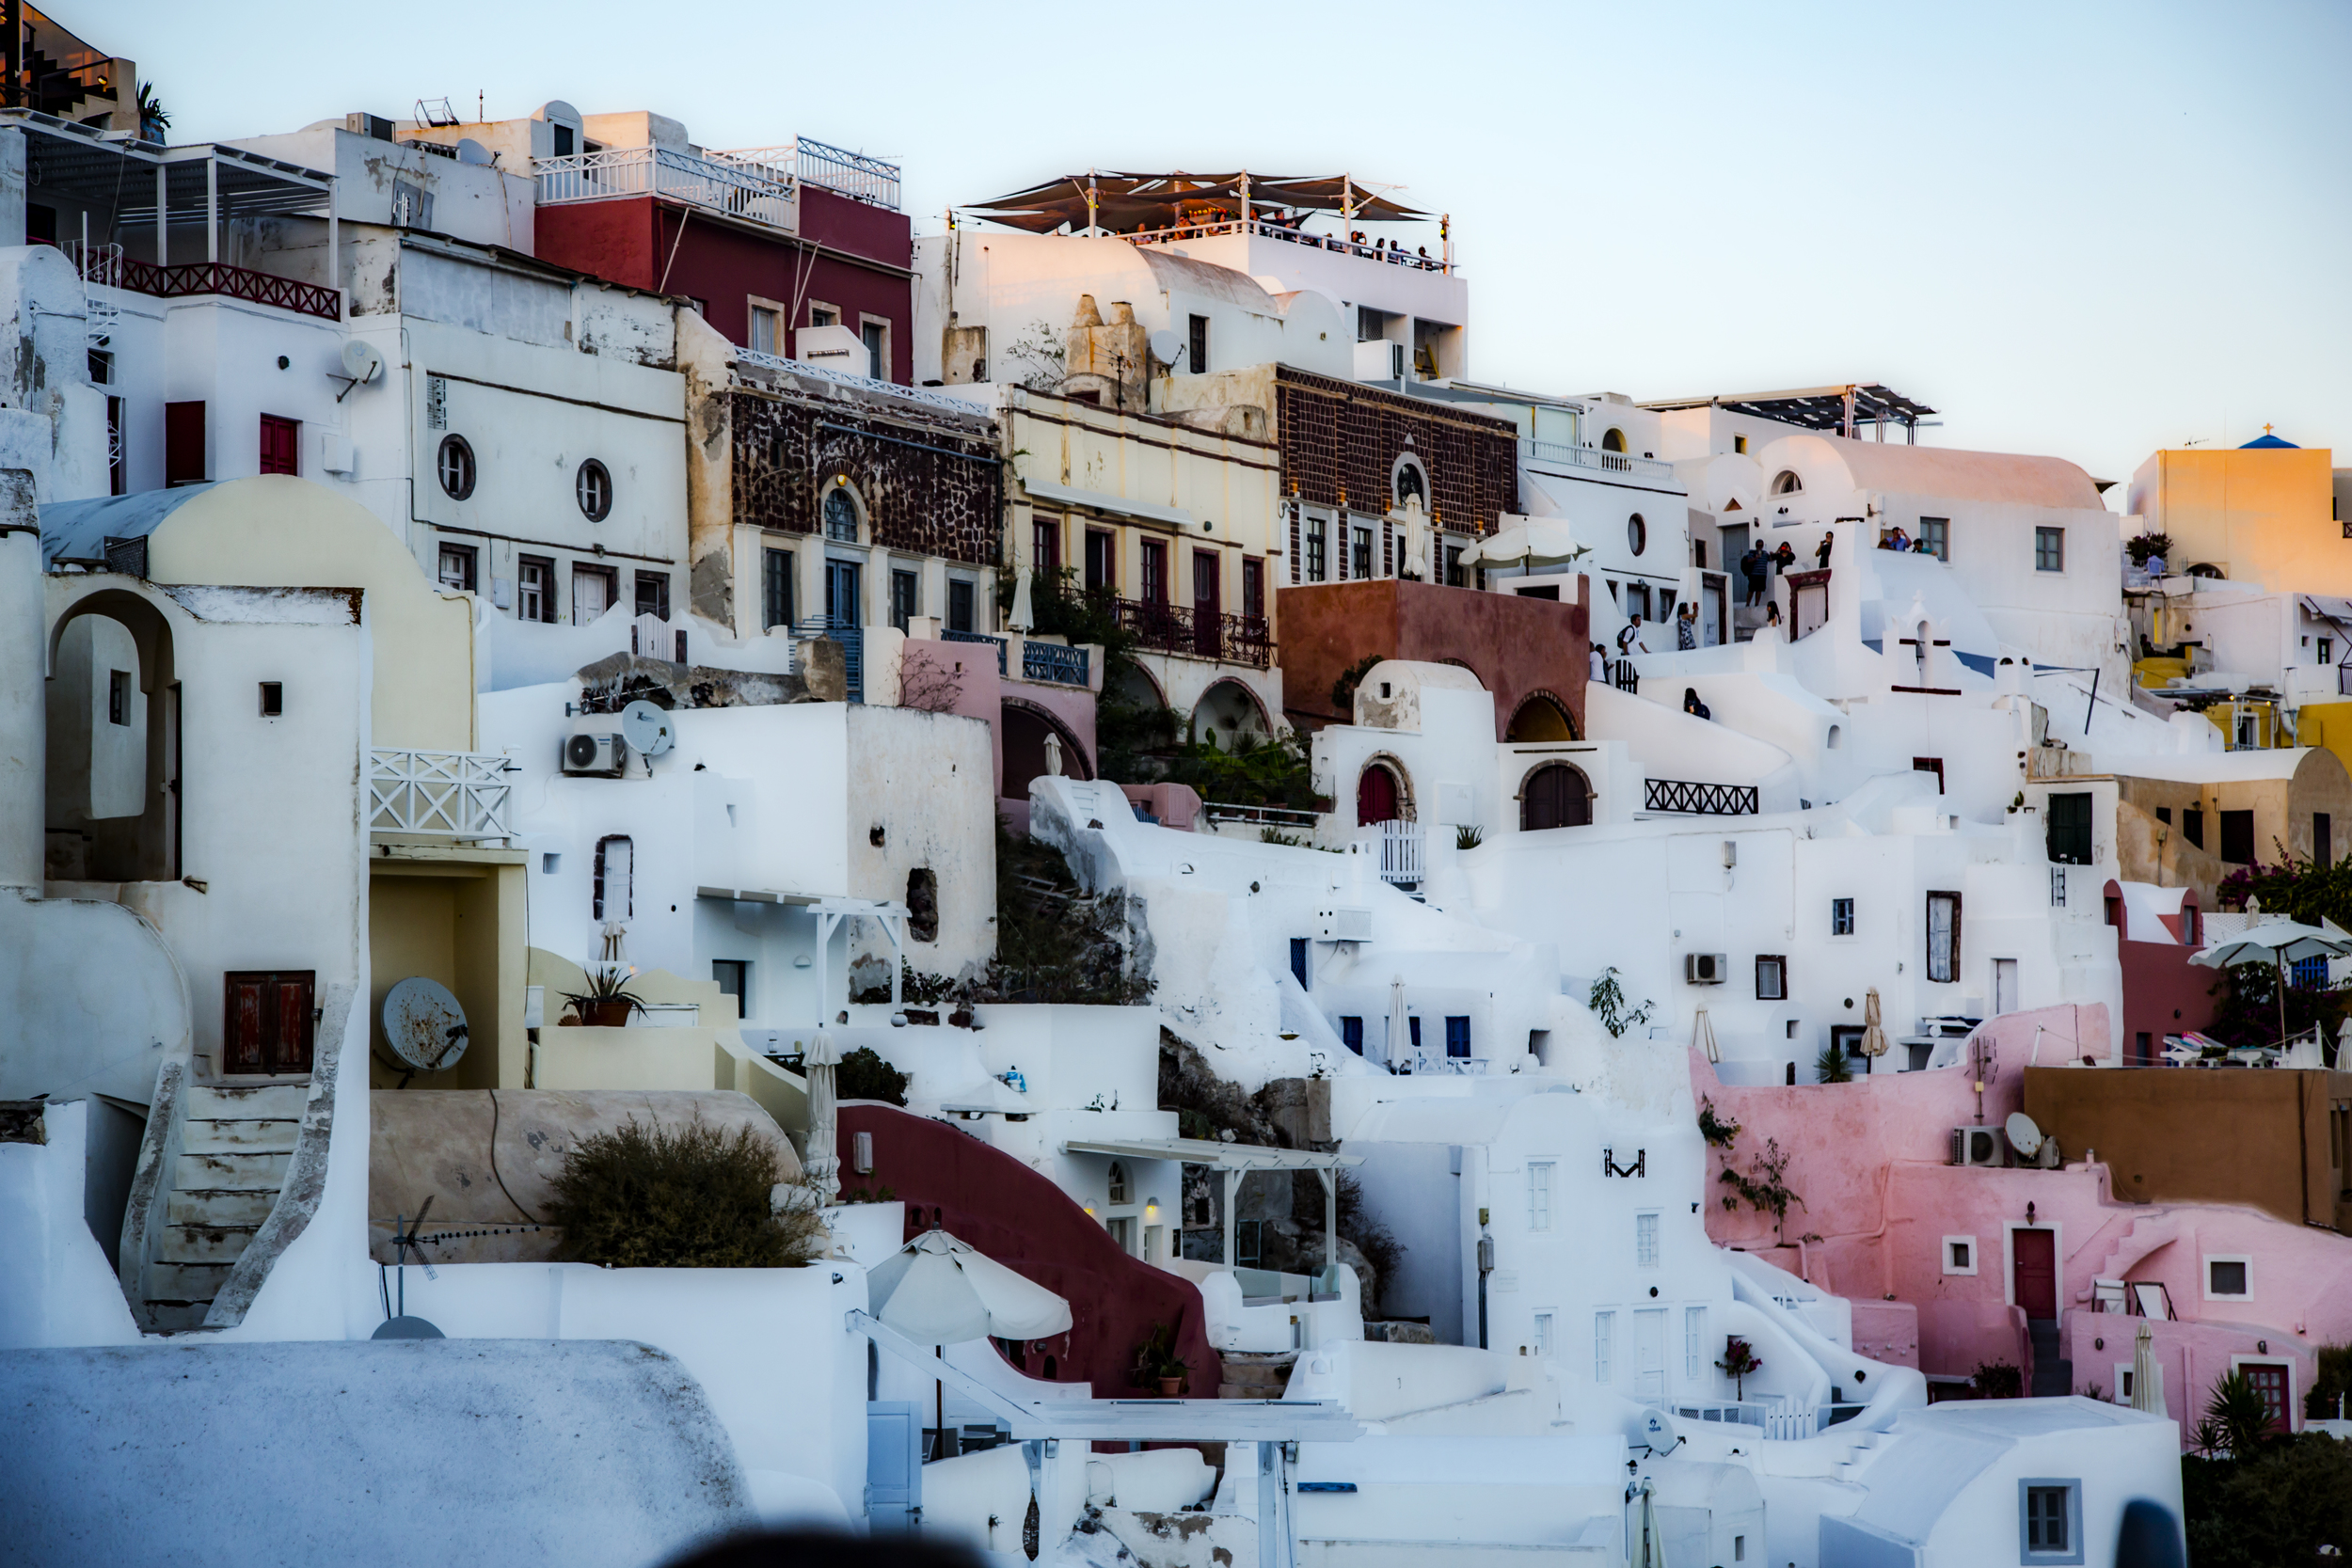 The homes of Oia give a pleasantly whimsical face to the village.